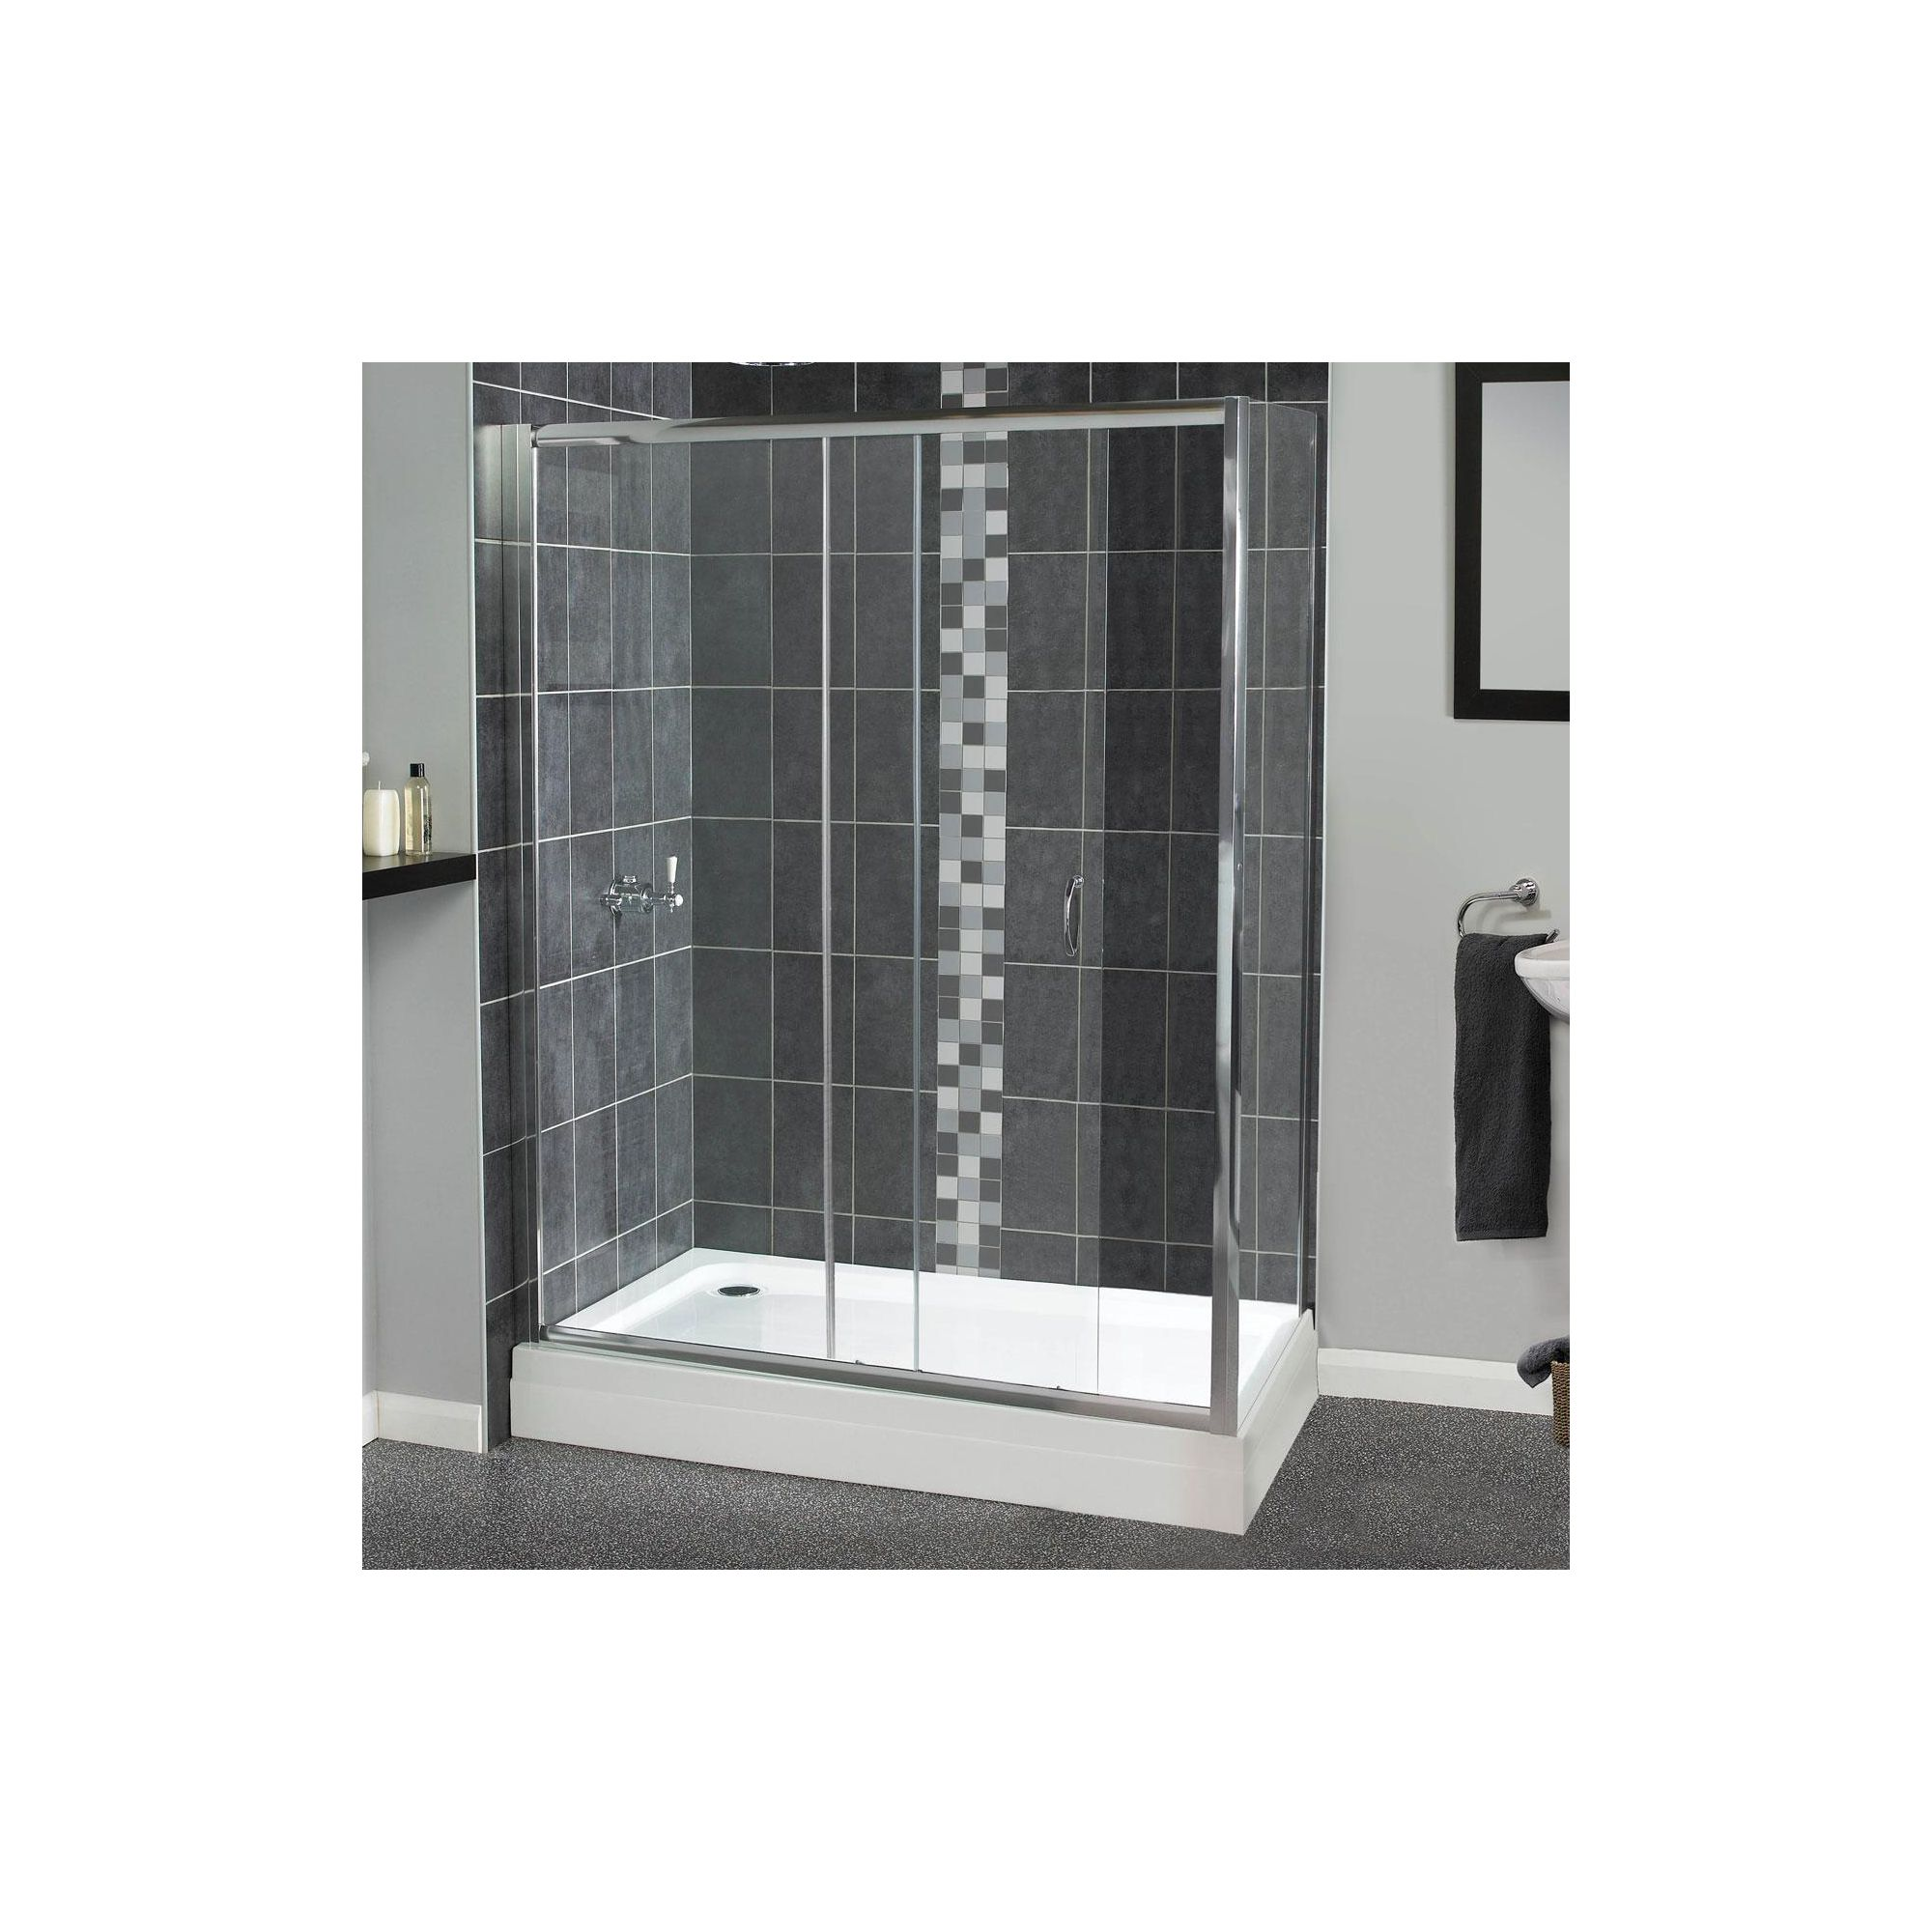 Aqualux Shine Sliding Shower Door, 1400mm Wide, Polished Silver Frame, 6mm Glass at Tescos Direct